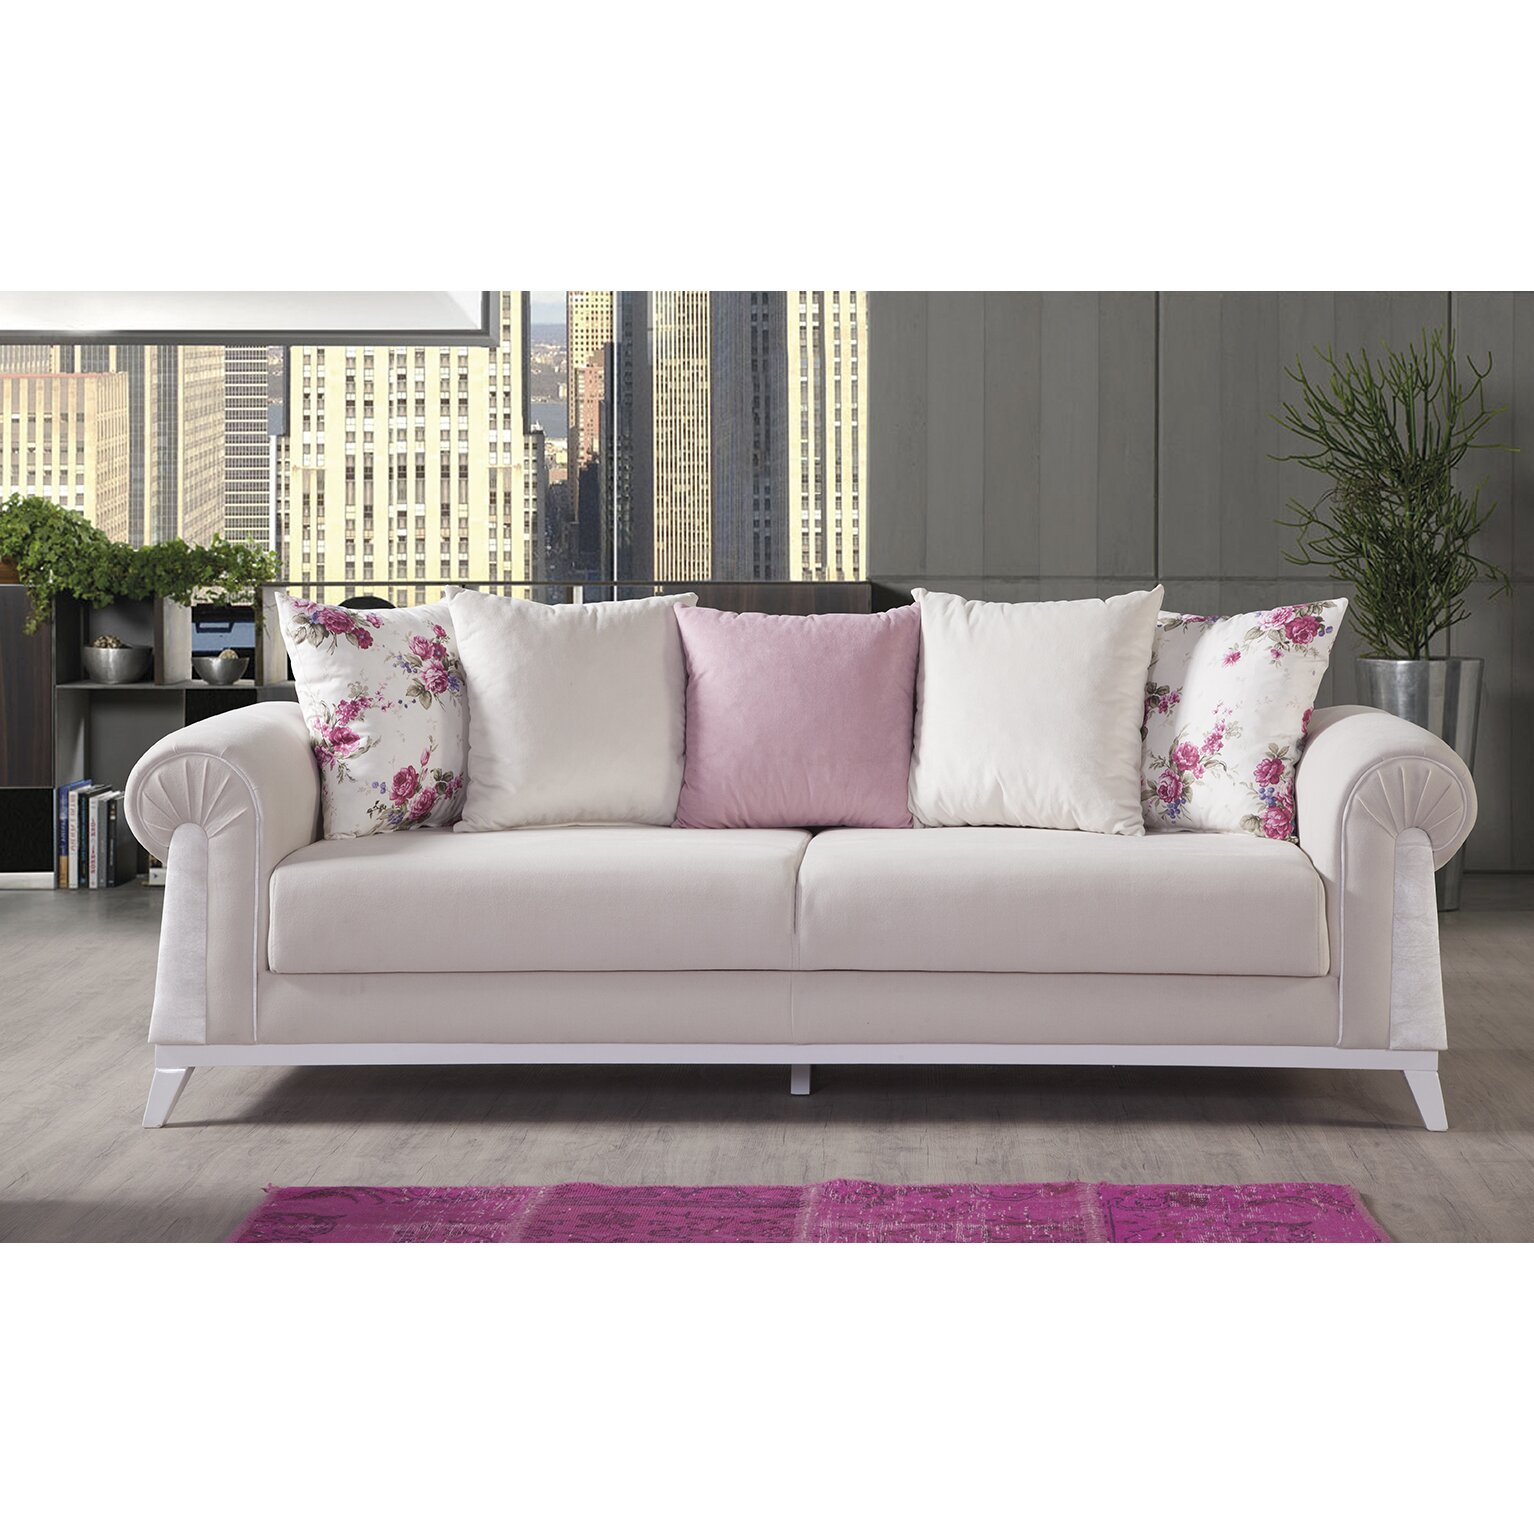 Perla Furniture London Sleeper Sofa Reviews Wayfair